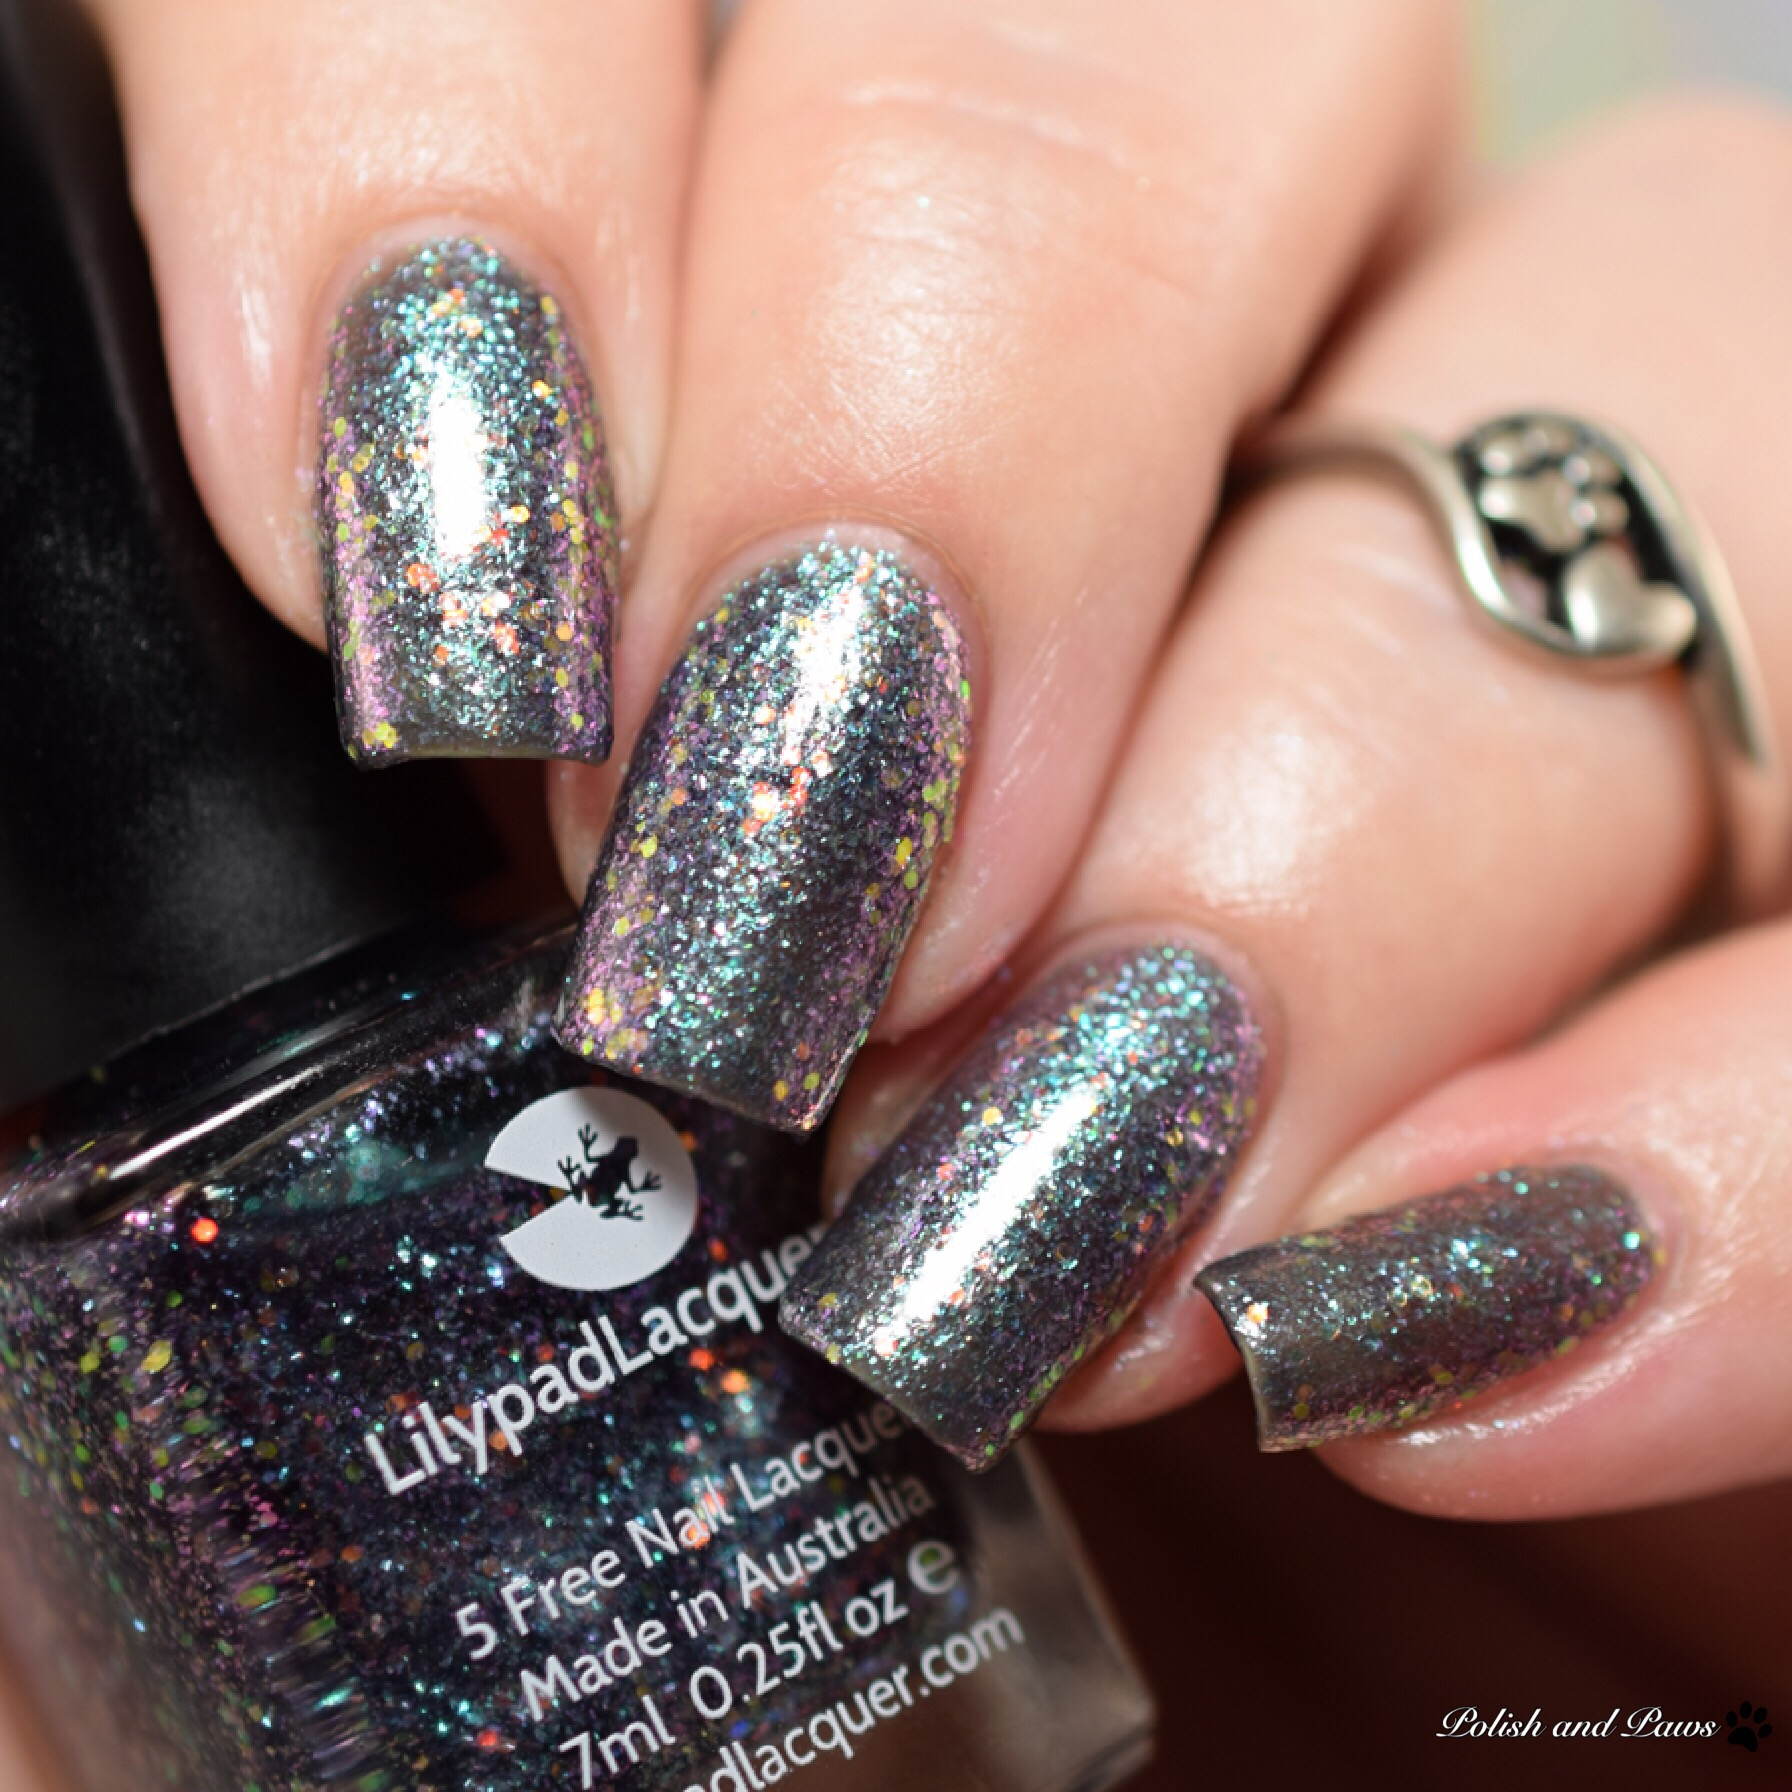 Lilypad Lacquer Blackberry Baby